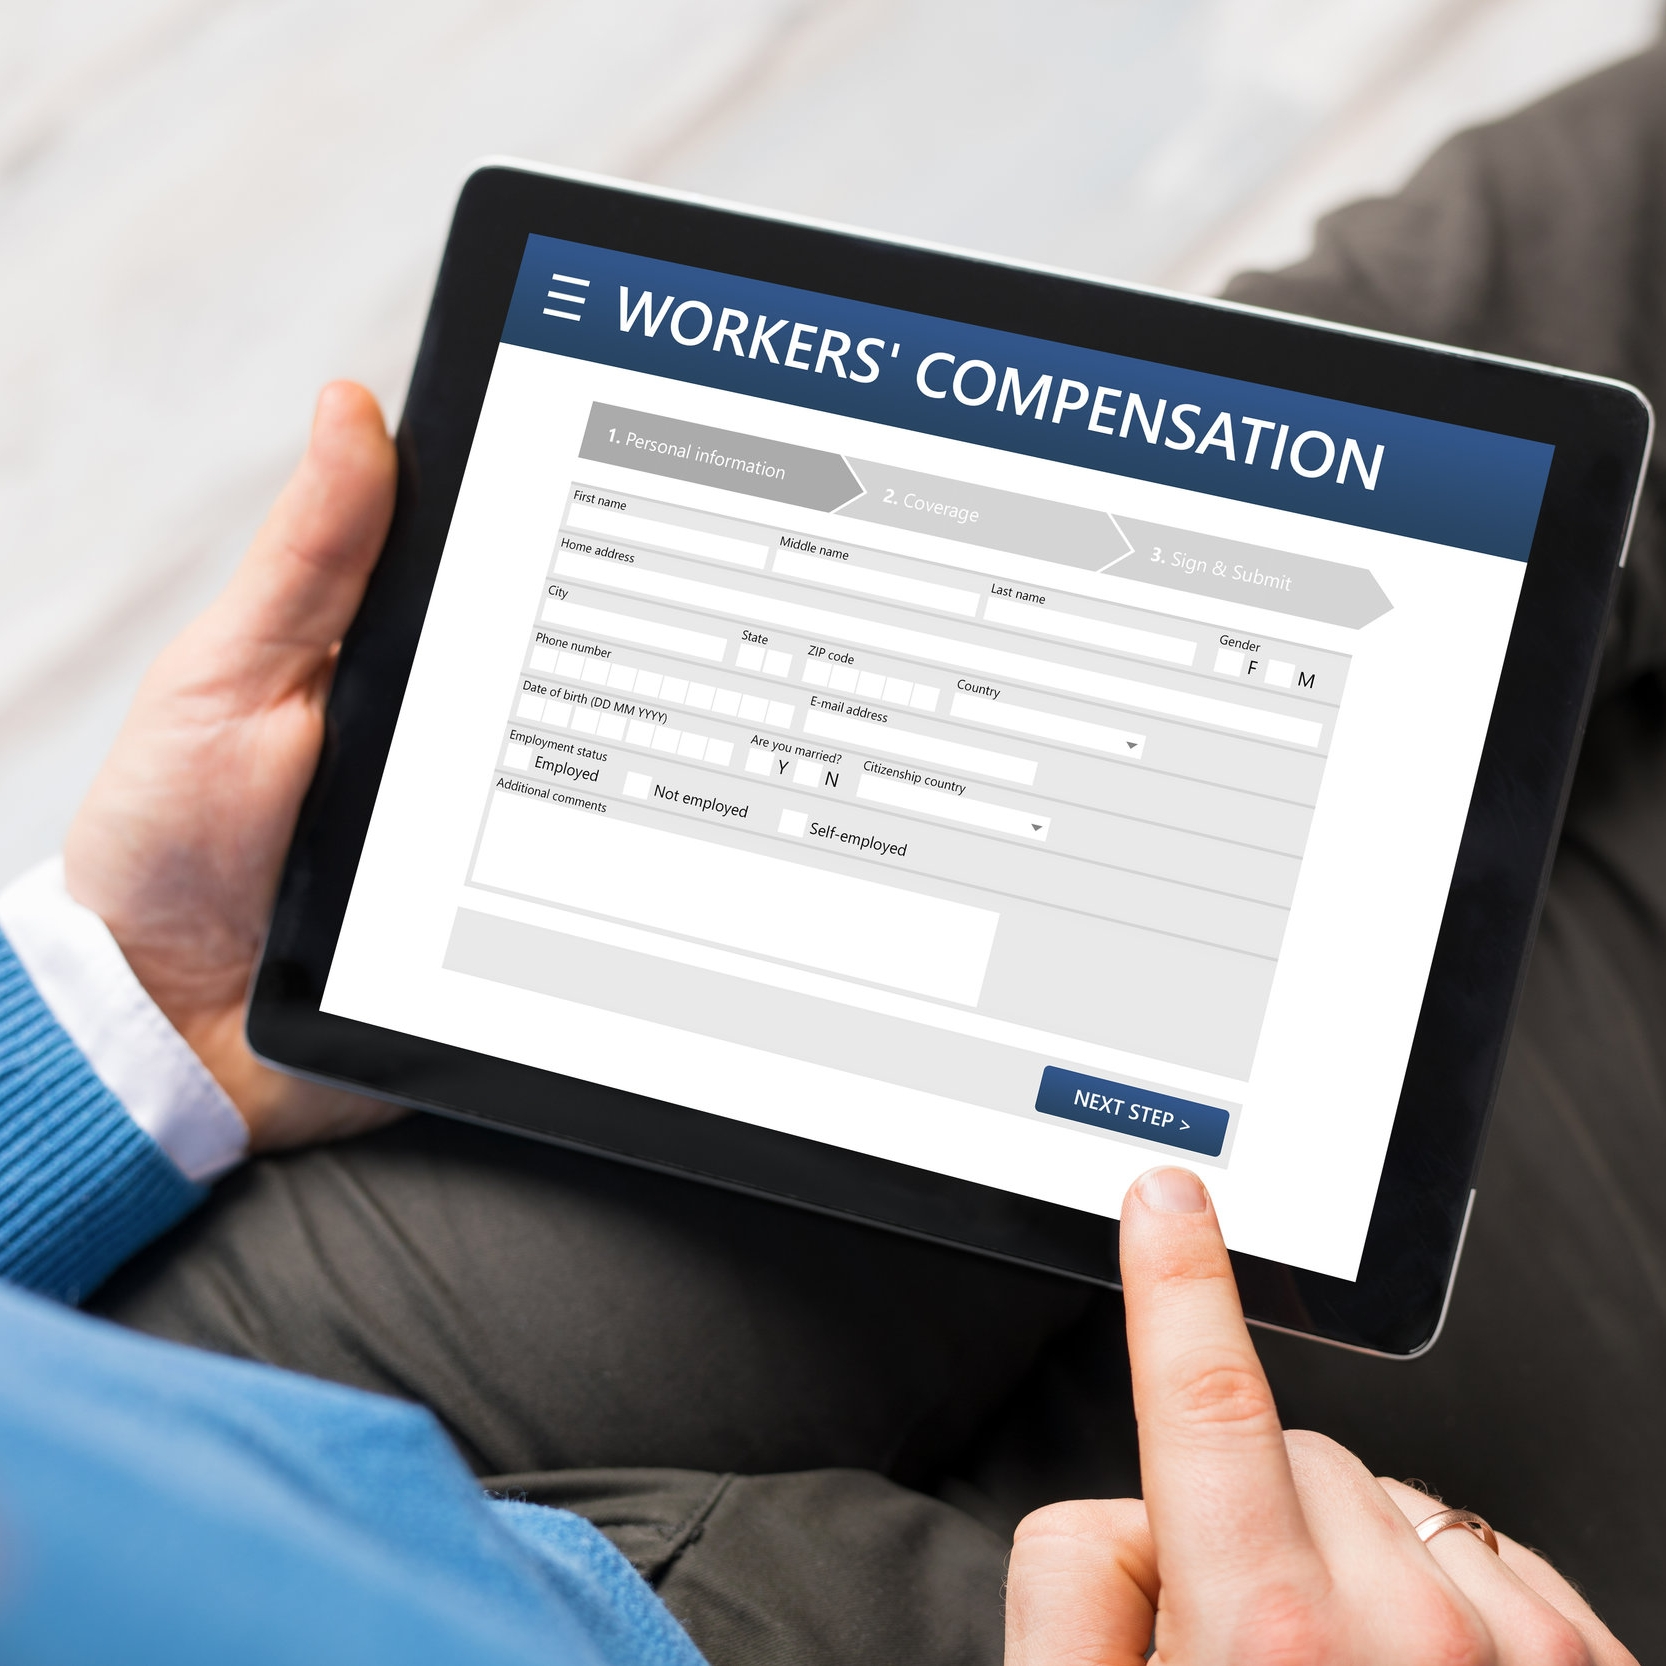 Workers' Compensation - Protecting Your Business From Employee Injuries on The Job. Workers' Compensation is a form of insurance providing wage replacement and medical benefits to employees injured in the course of employment in exchange for mandatory relinquishment of the employee's right to sue his or her employer for the tort of negligence.HOW RATES ARE DETERMINED•Payroll•Job Duties•Area Business Is Located•Claims Experience•Safety Programs•And Other Factors...